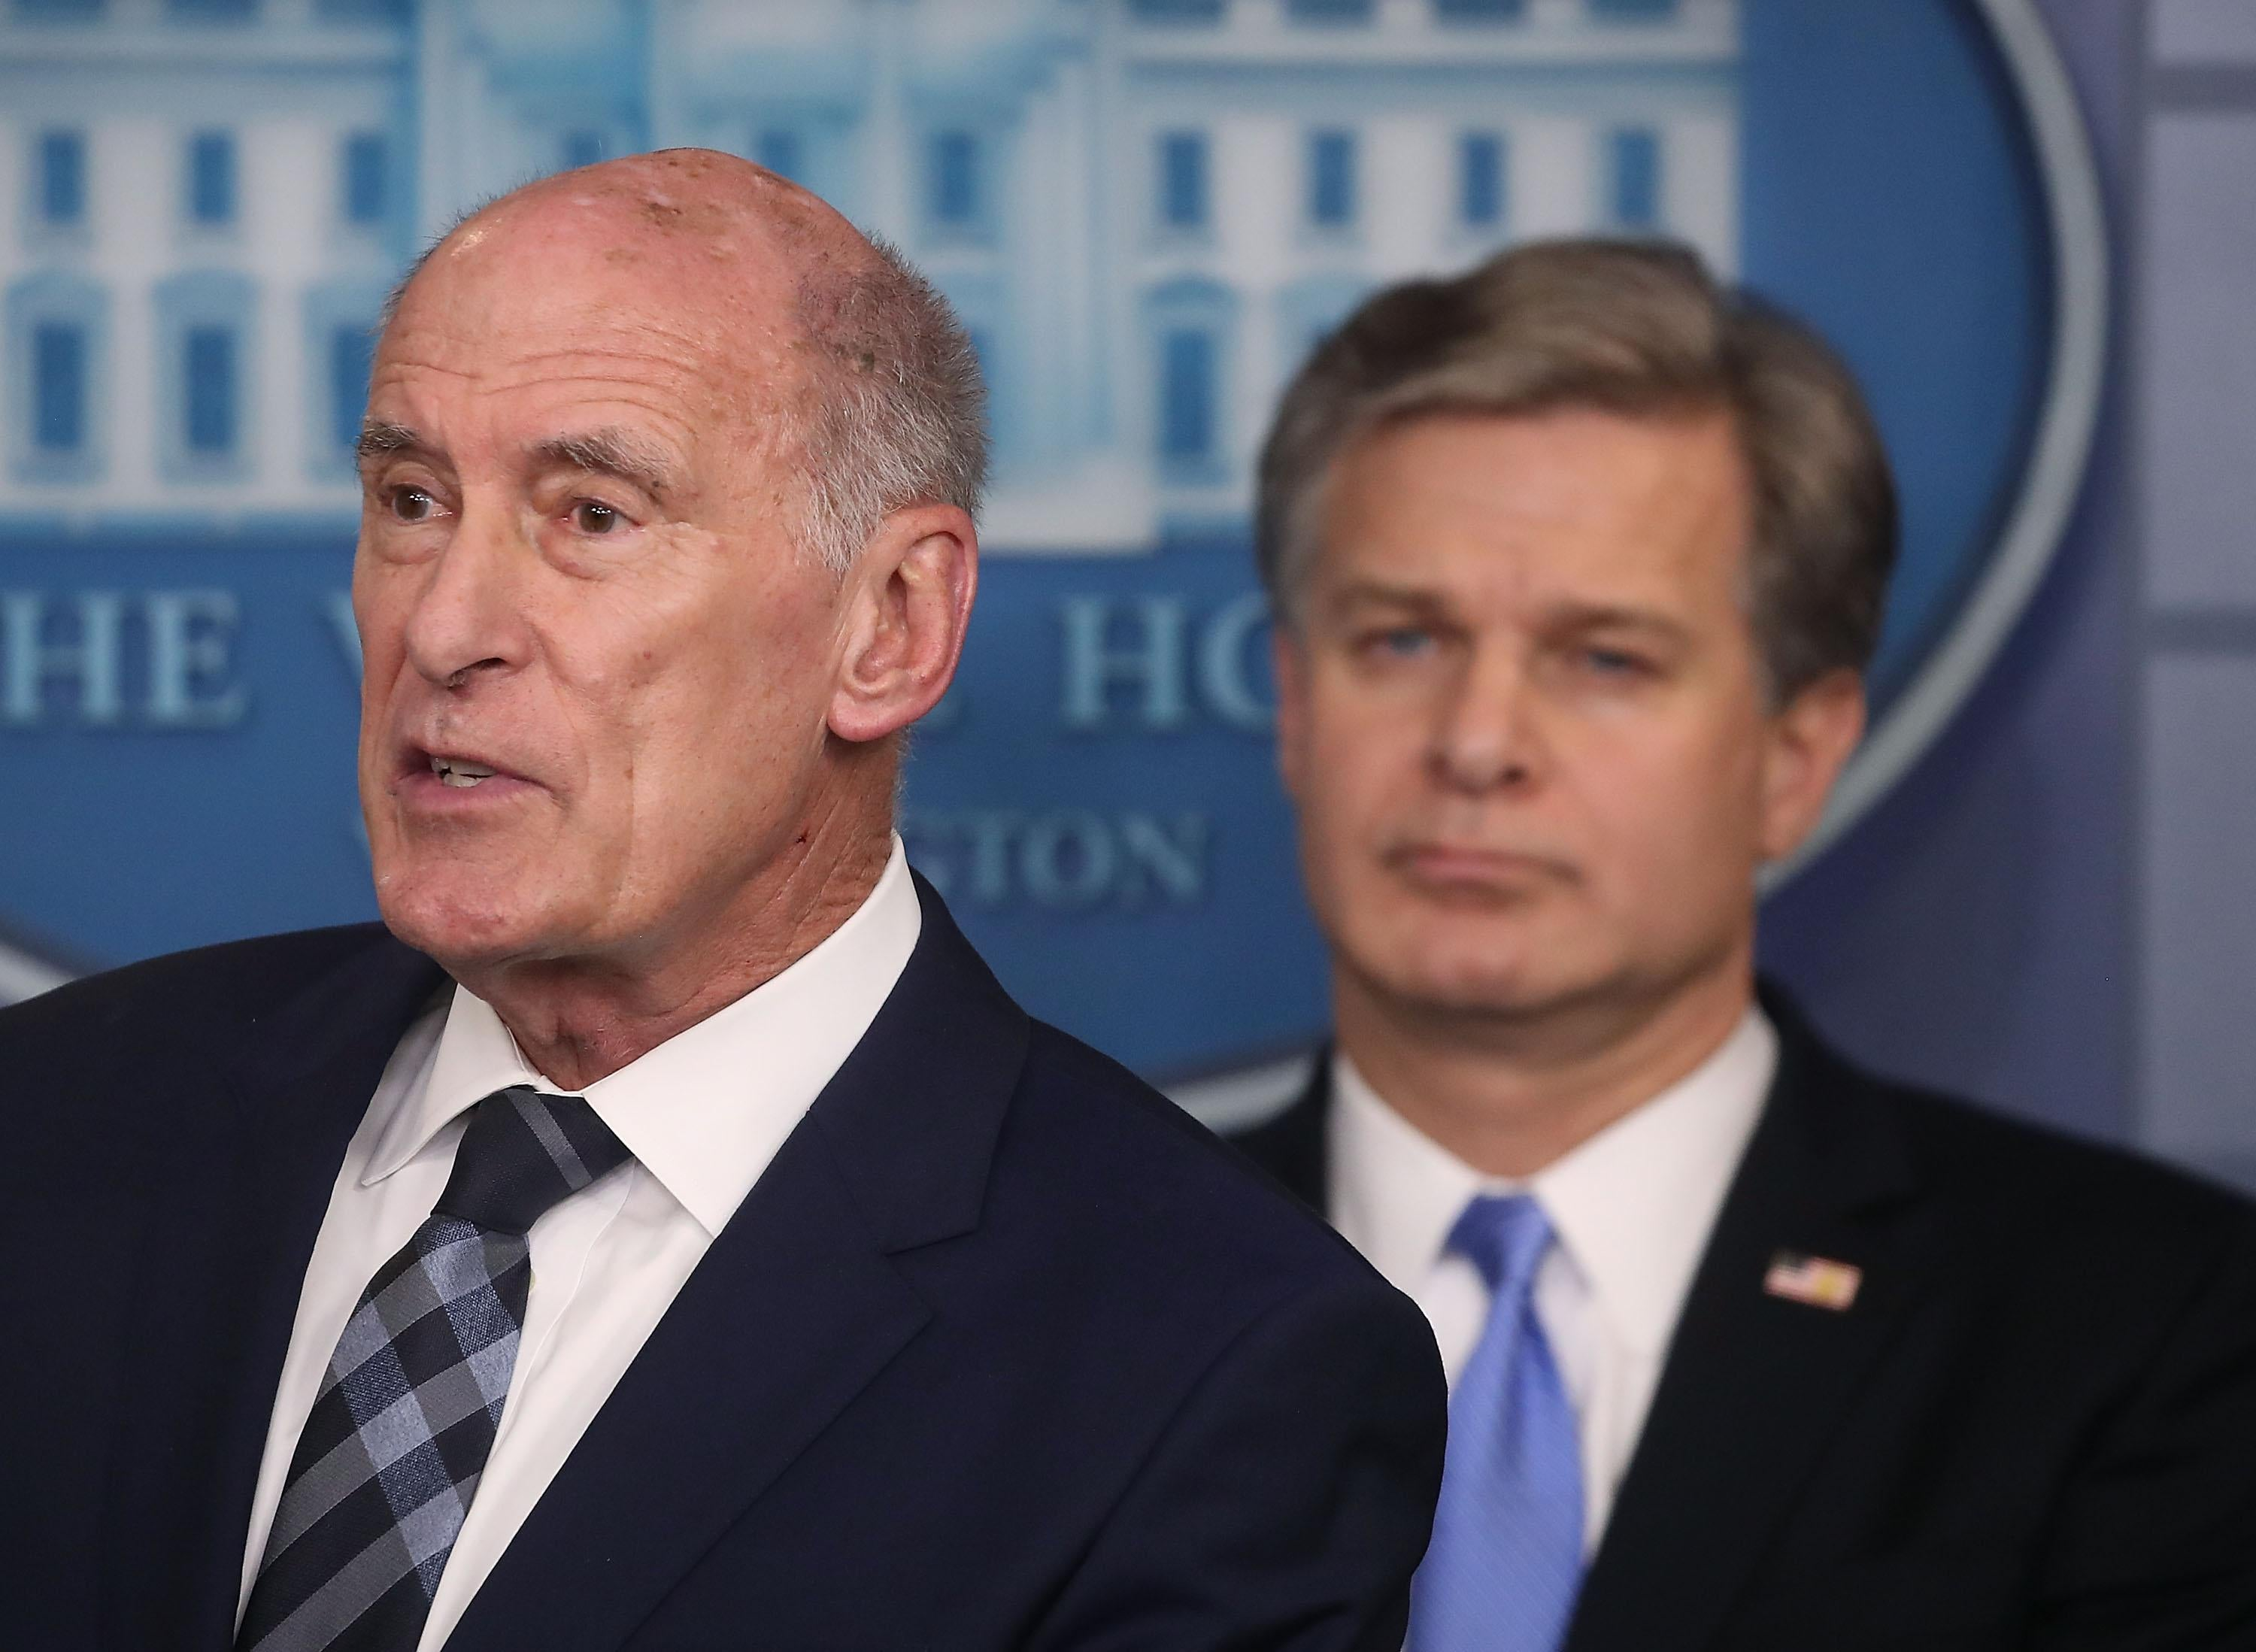 Dan Coats and Christopher Wray in White House briefing room.